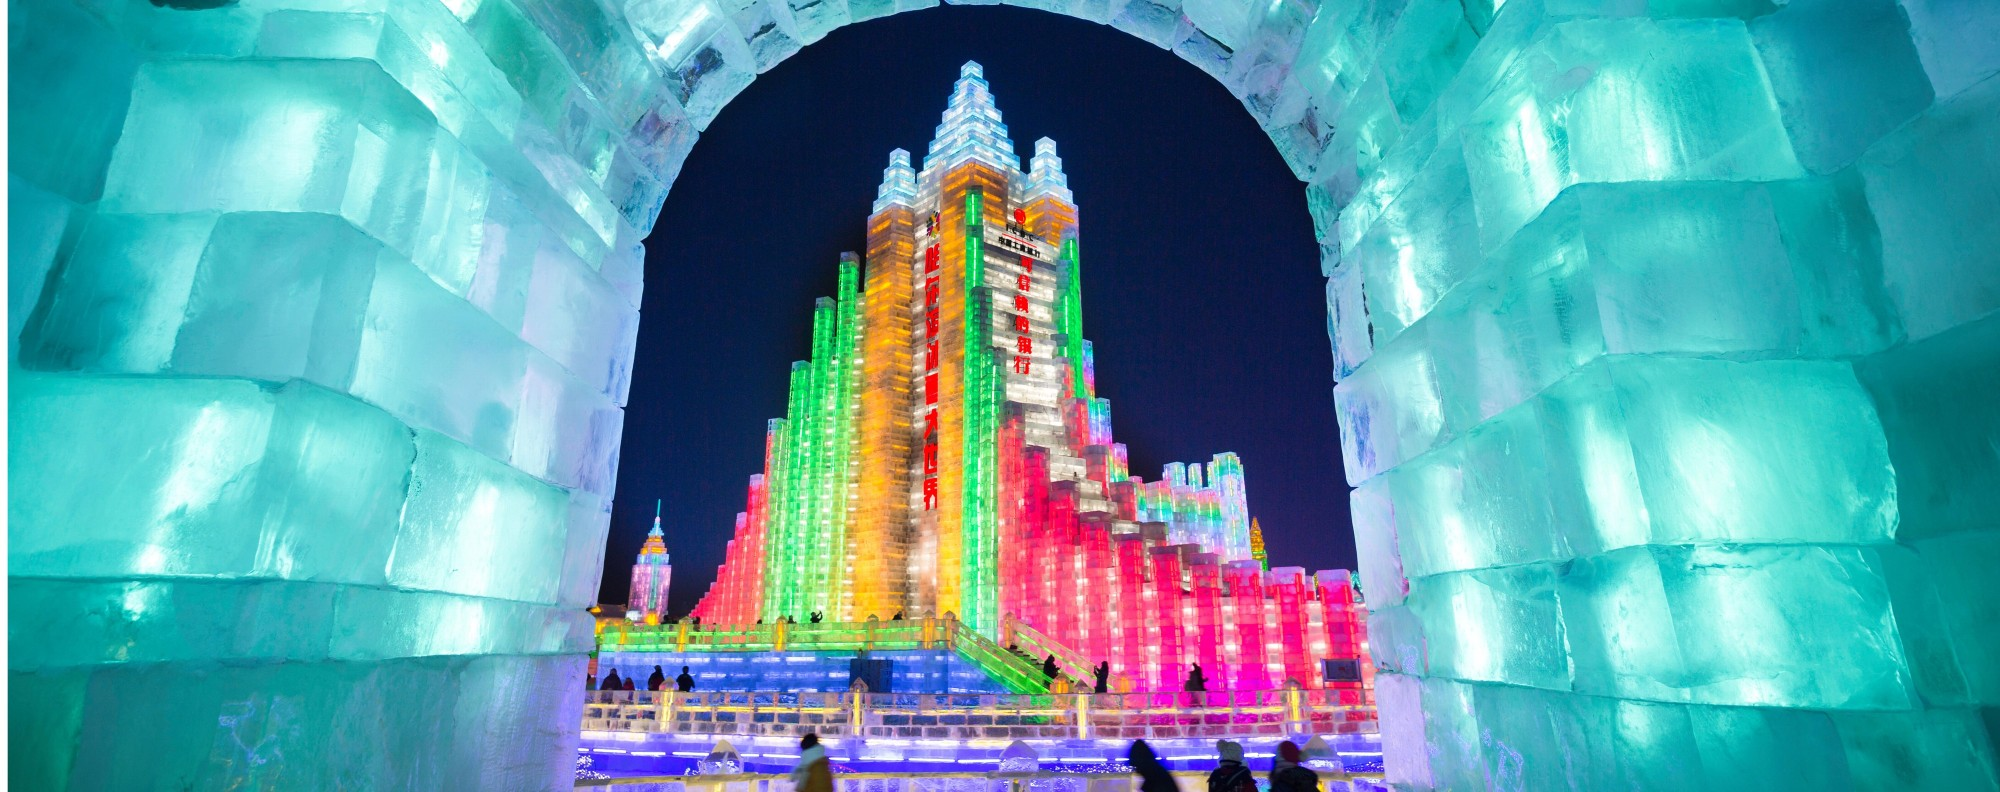 Ice sculptures at the Harbin Ice and Snow Festival. Picture: Alamy